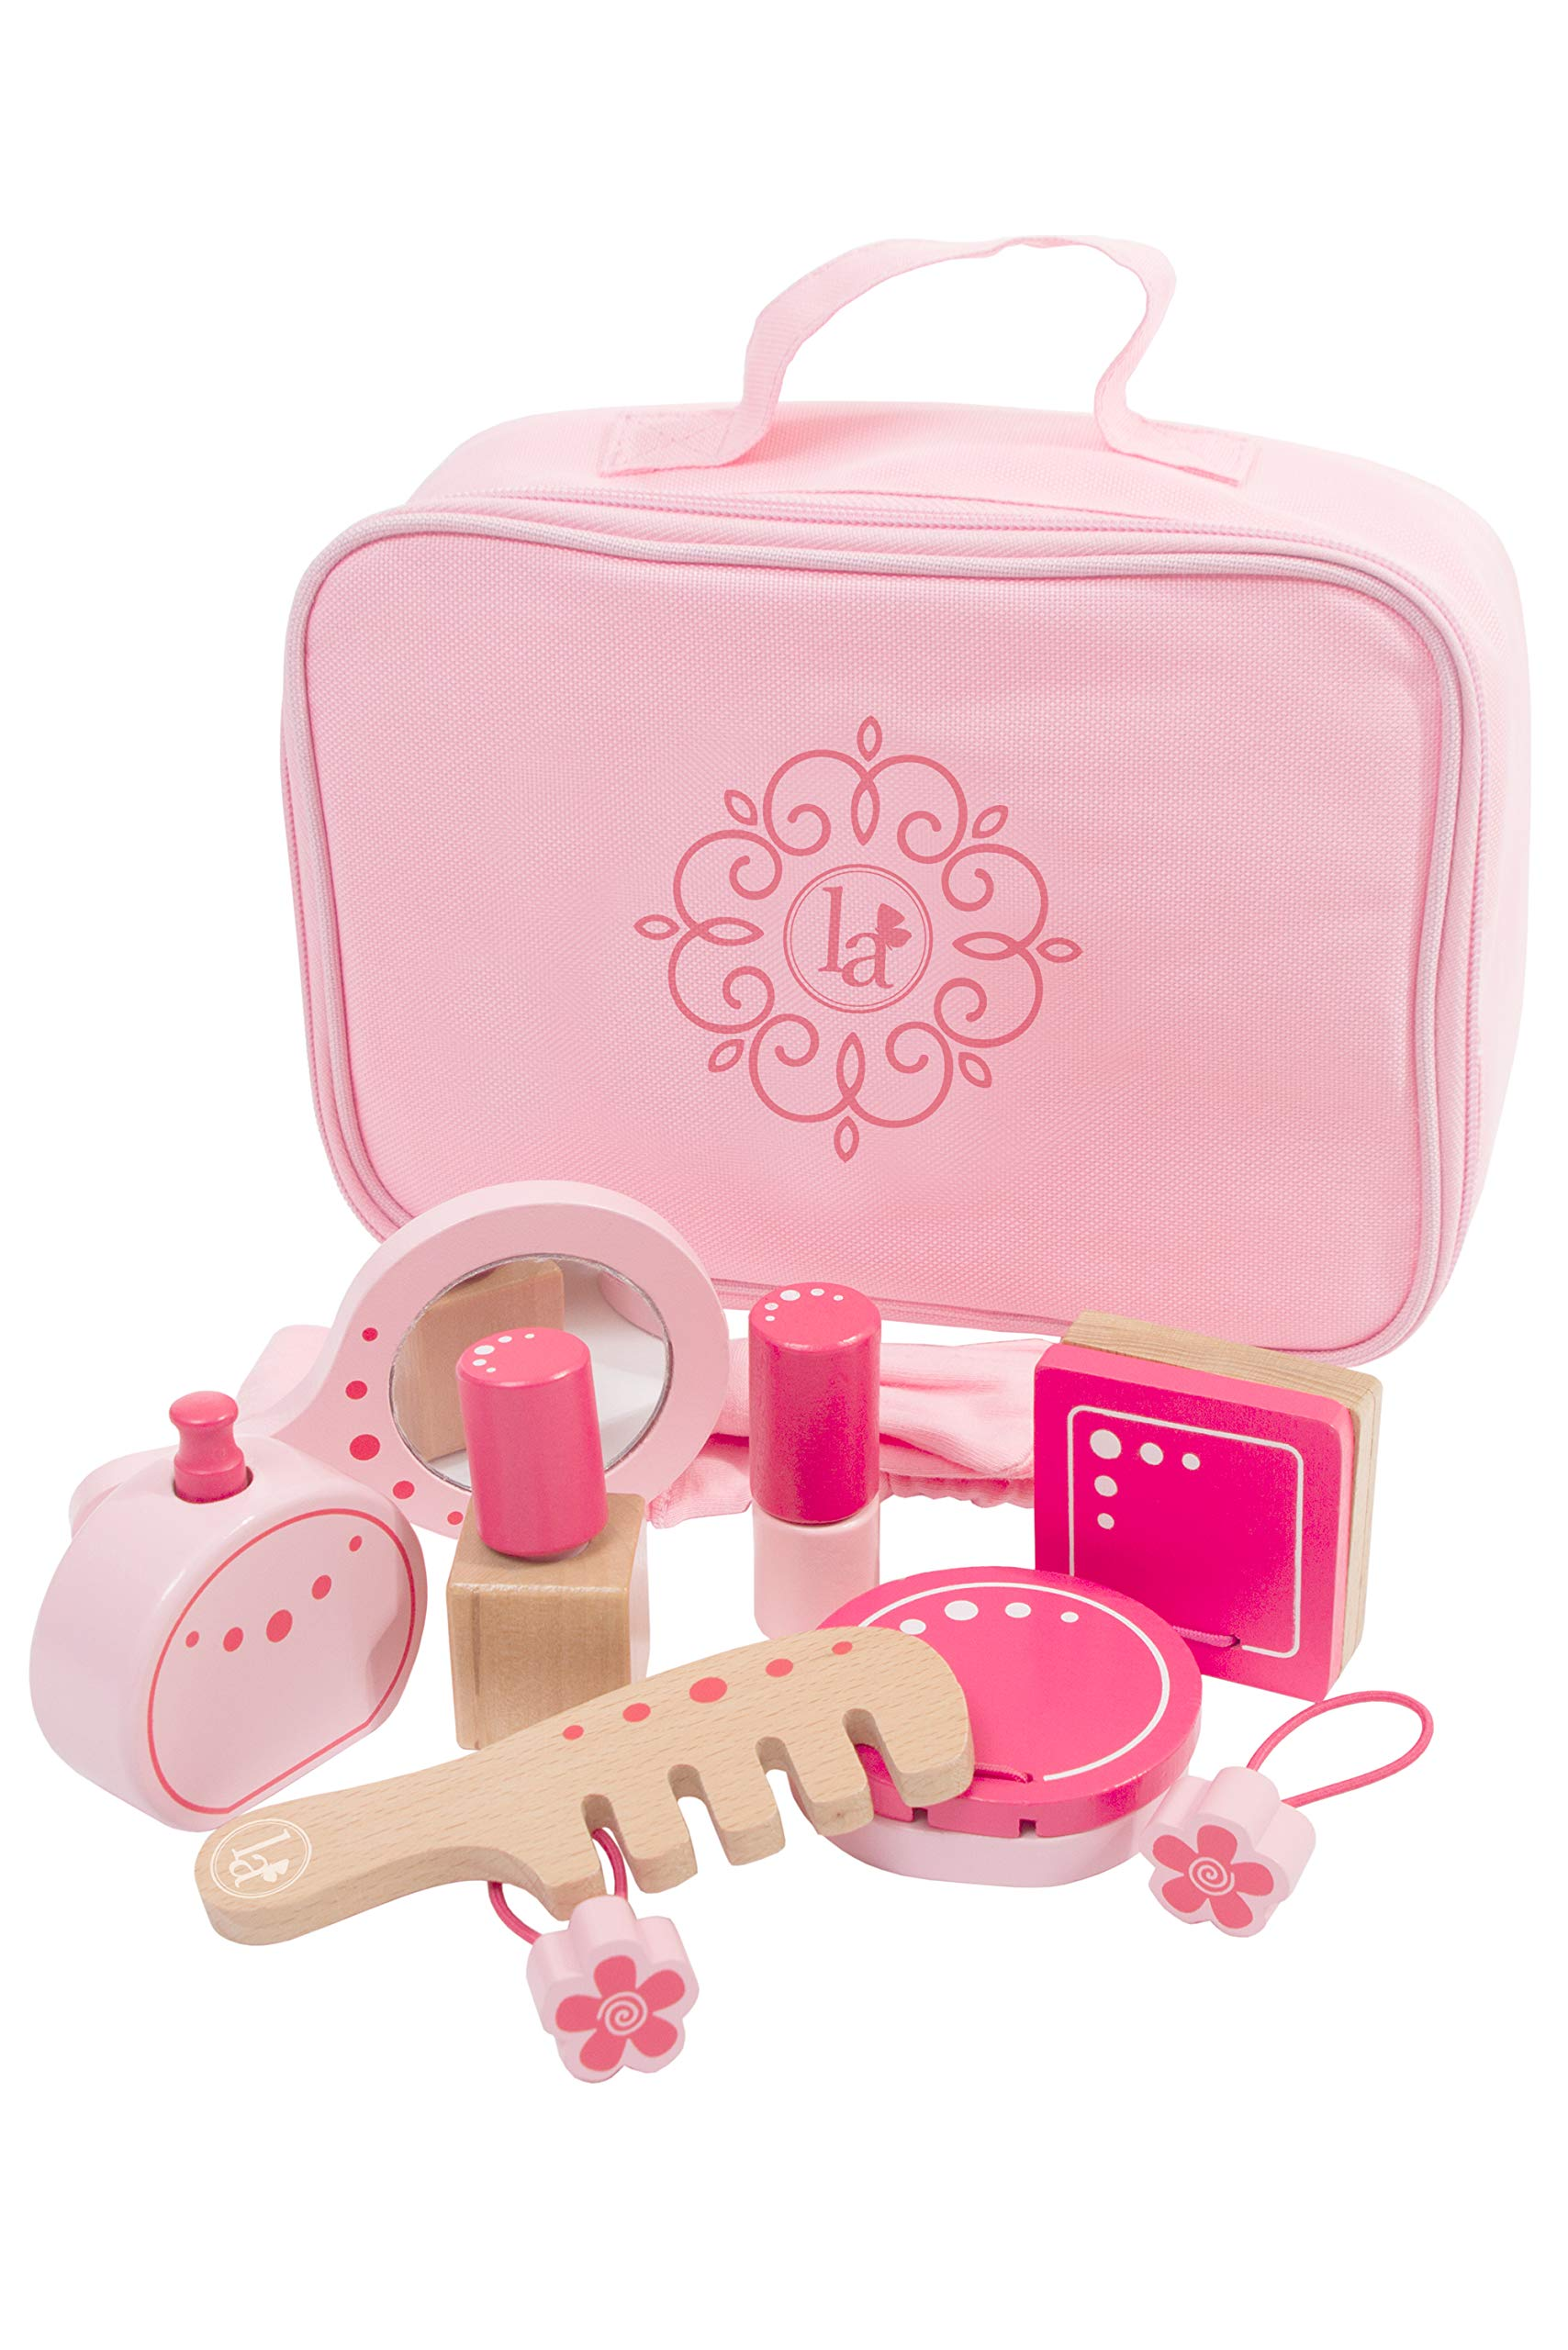 Little Adventures Little Beauty Salon Beautician Wooden Toy Set with Carrying Case Pink by Little Adventures (Image #1)